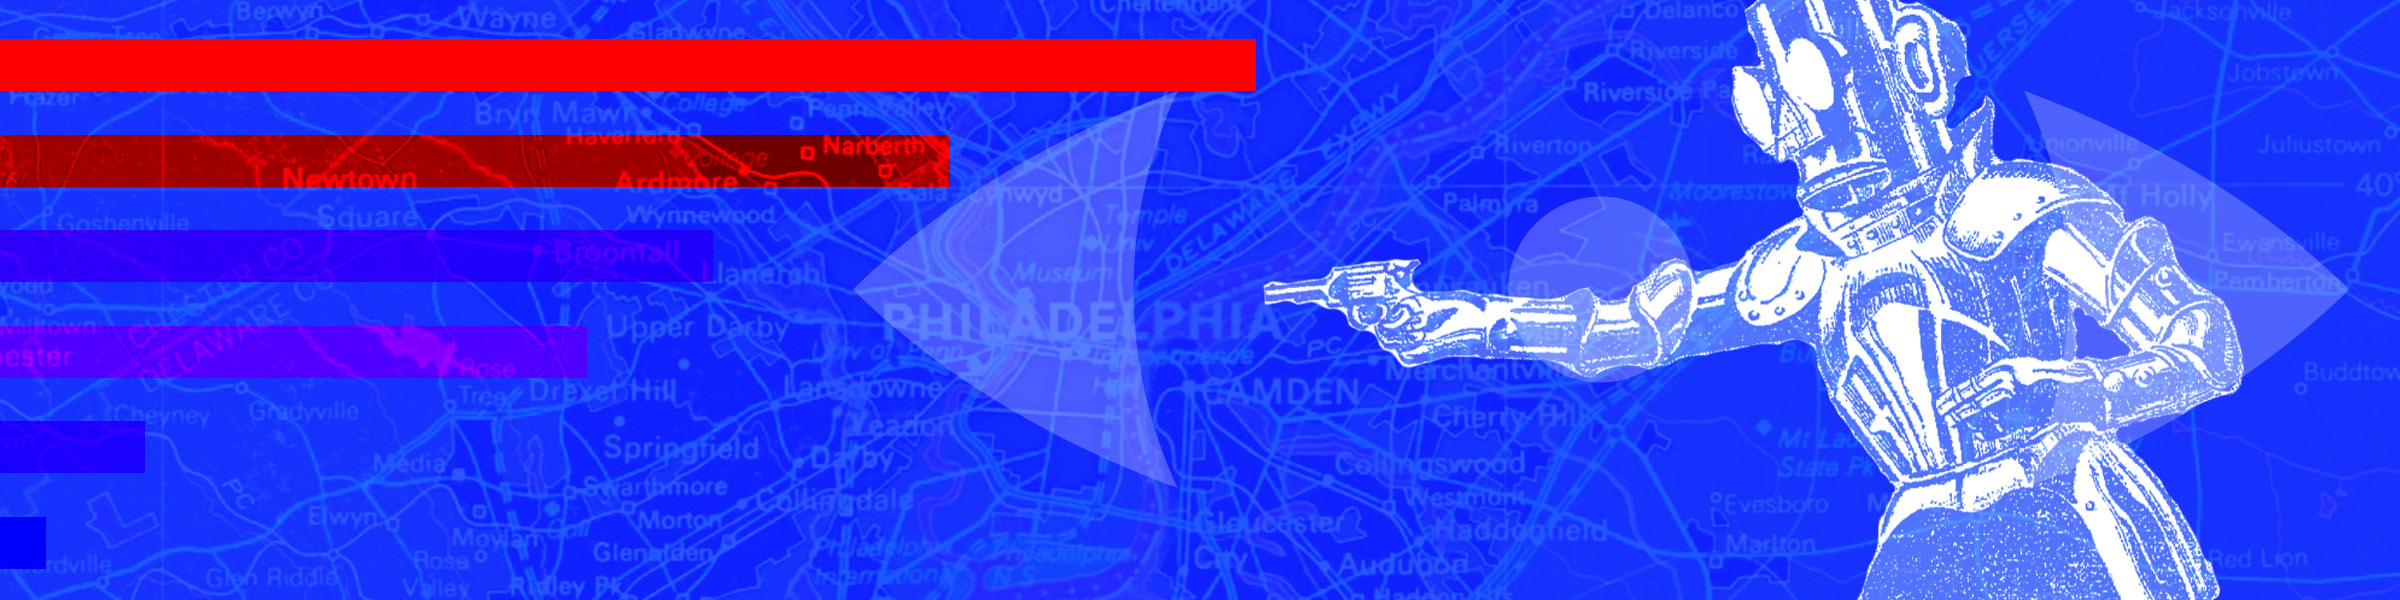 A drawing of a robot pointing a gun over a map of Philadelphia